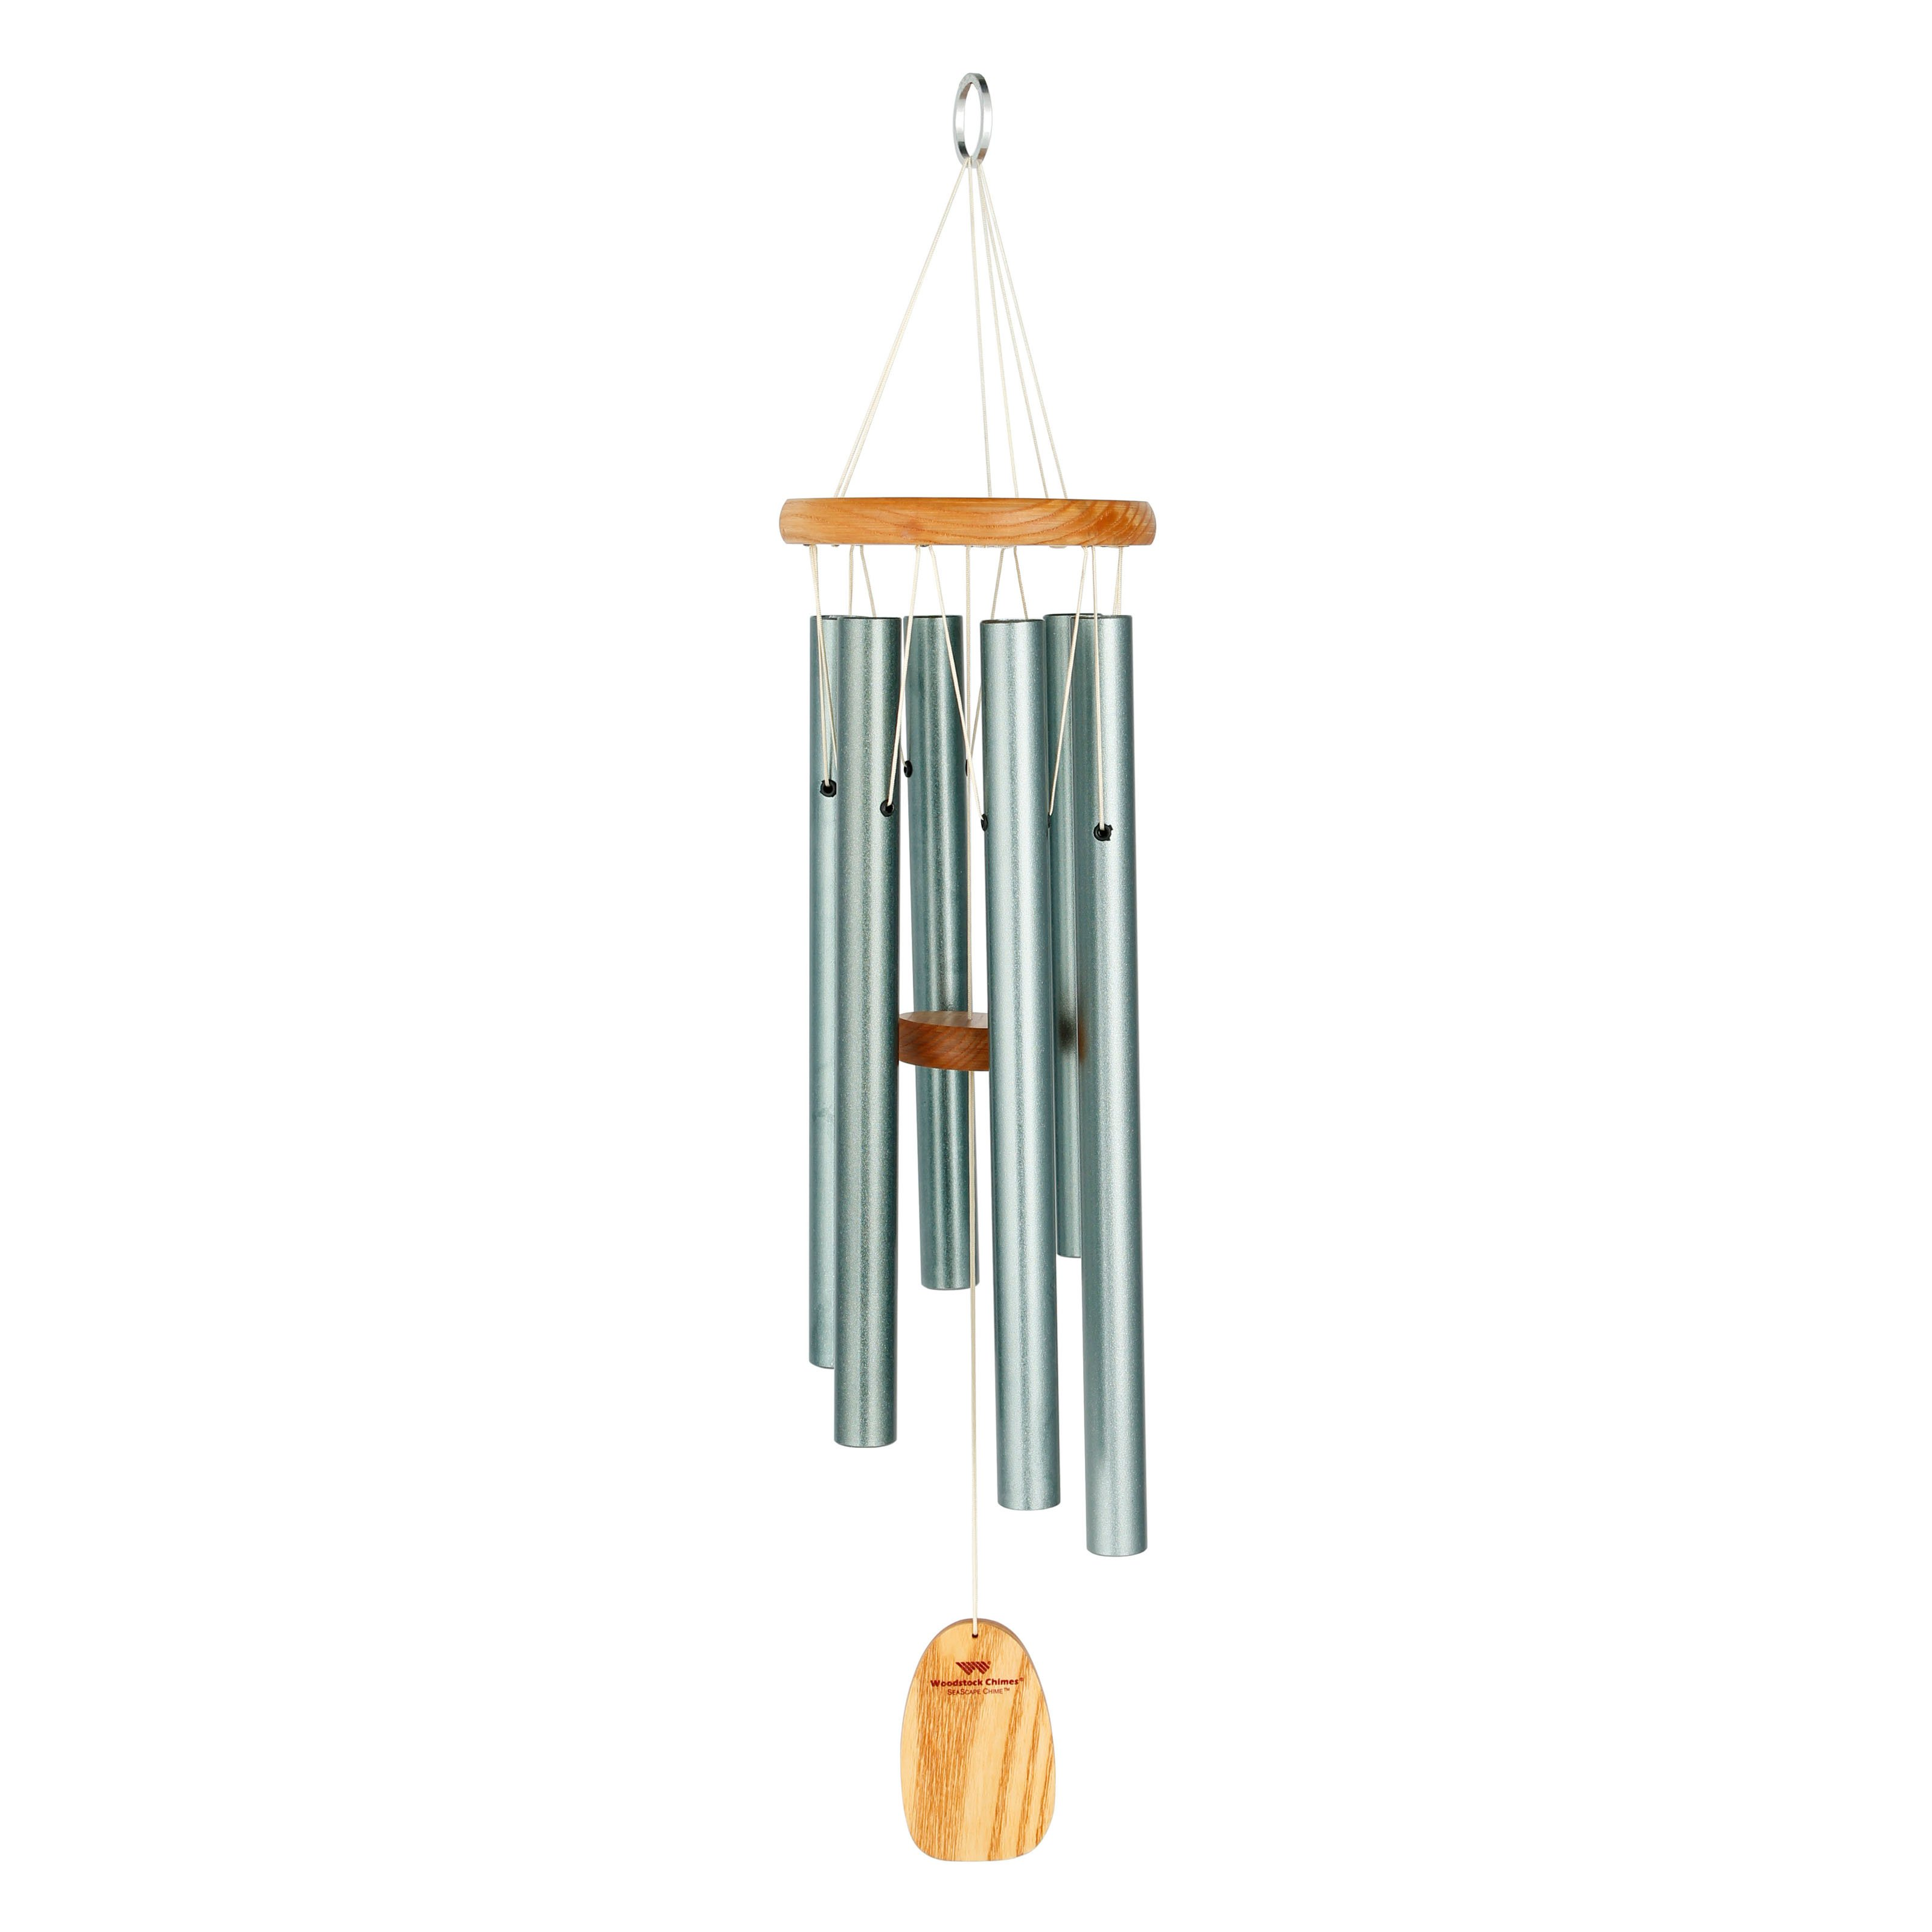 Signature Collection - Woodstock SeaScape Chime - Seafoam Green, Medium SSCSGM by Woodstock